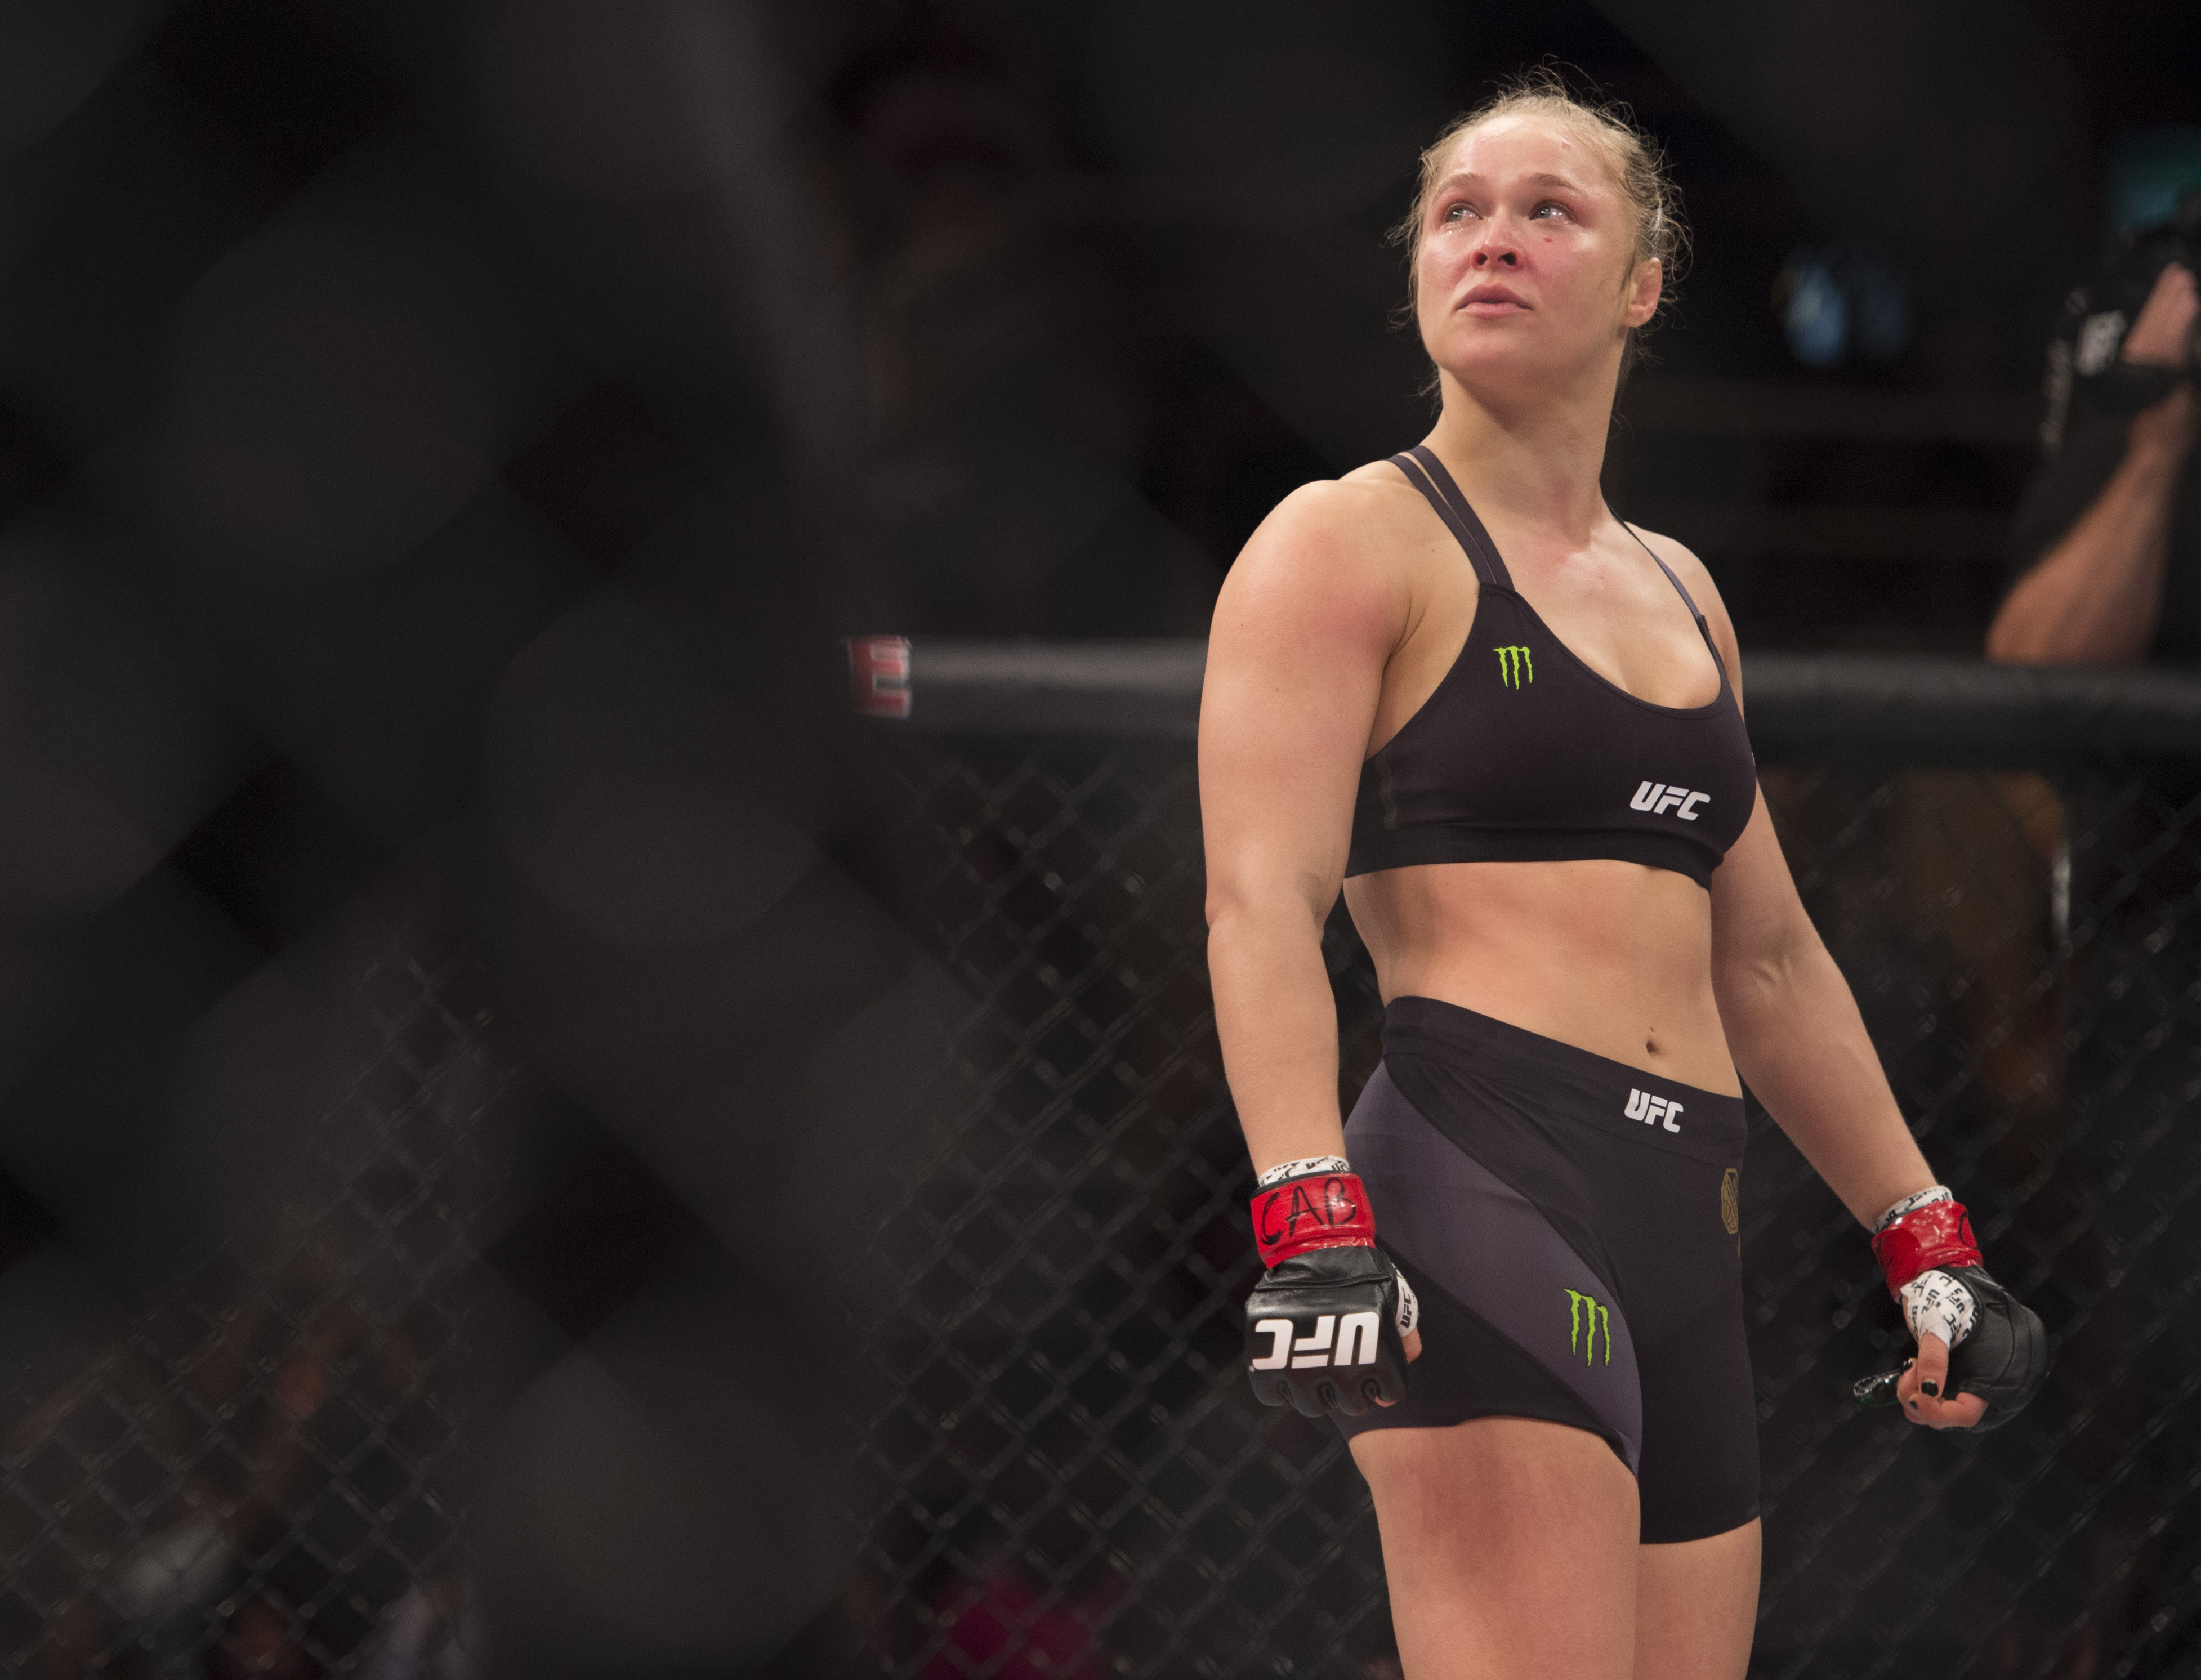 UFC women's bantamweight champion Ronda Rousey celebrates after defeating Bethe Correia of Brazil by KO during the UFC 190 event on August 1, 2015 in Rio de Janeiro.